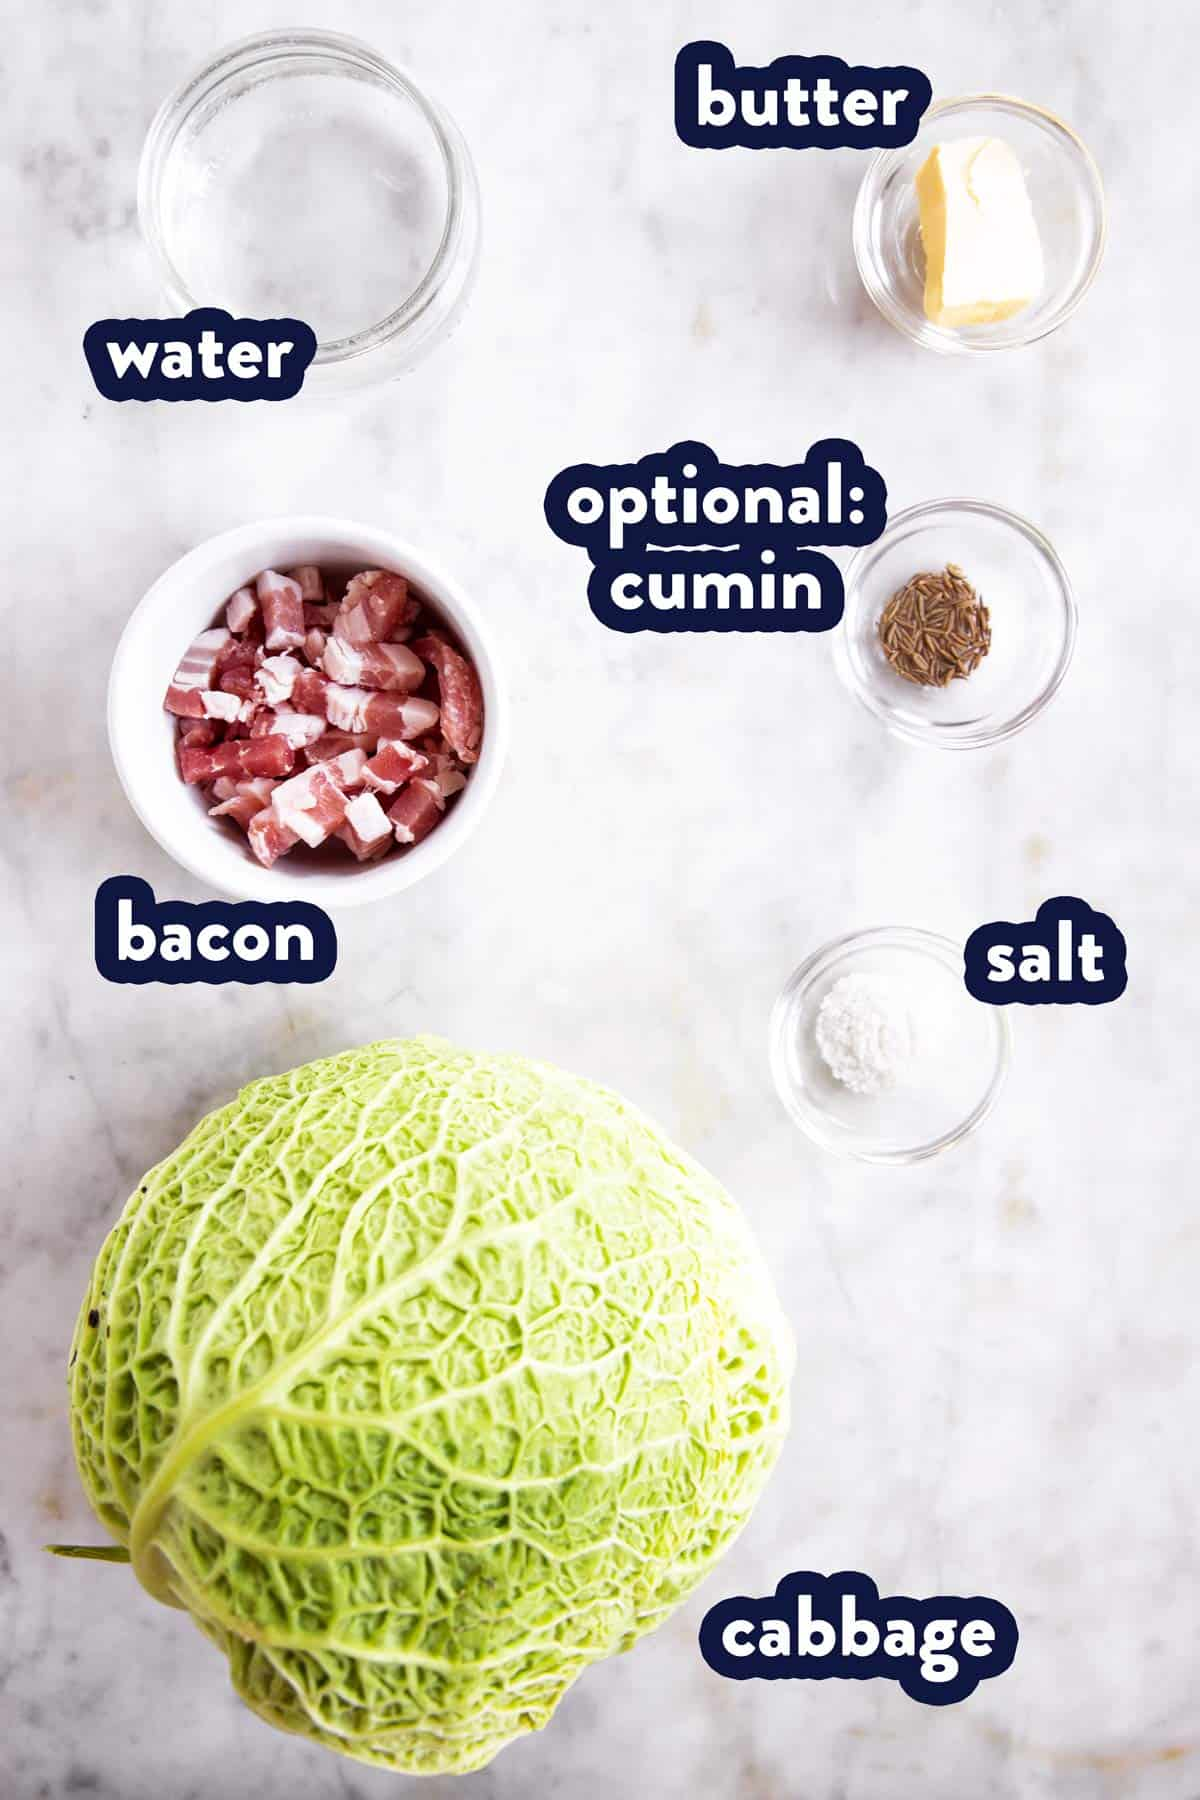 ingredients for braised cabbage with text labels